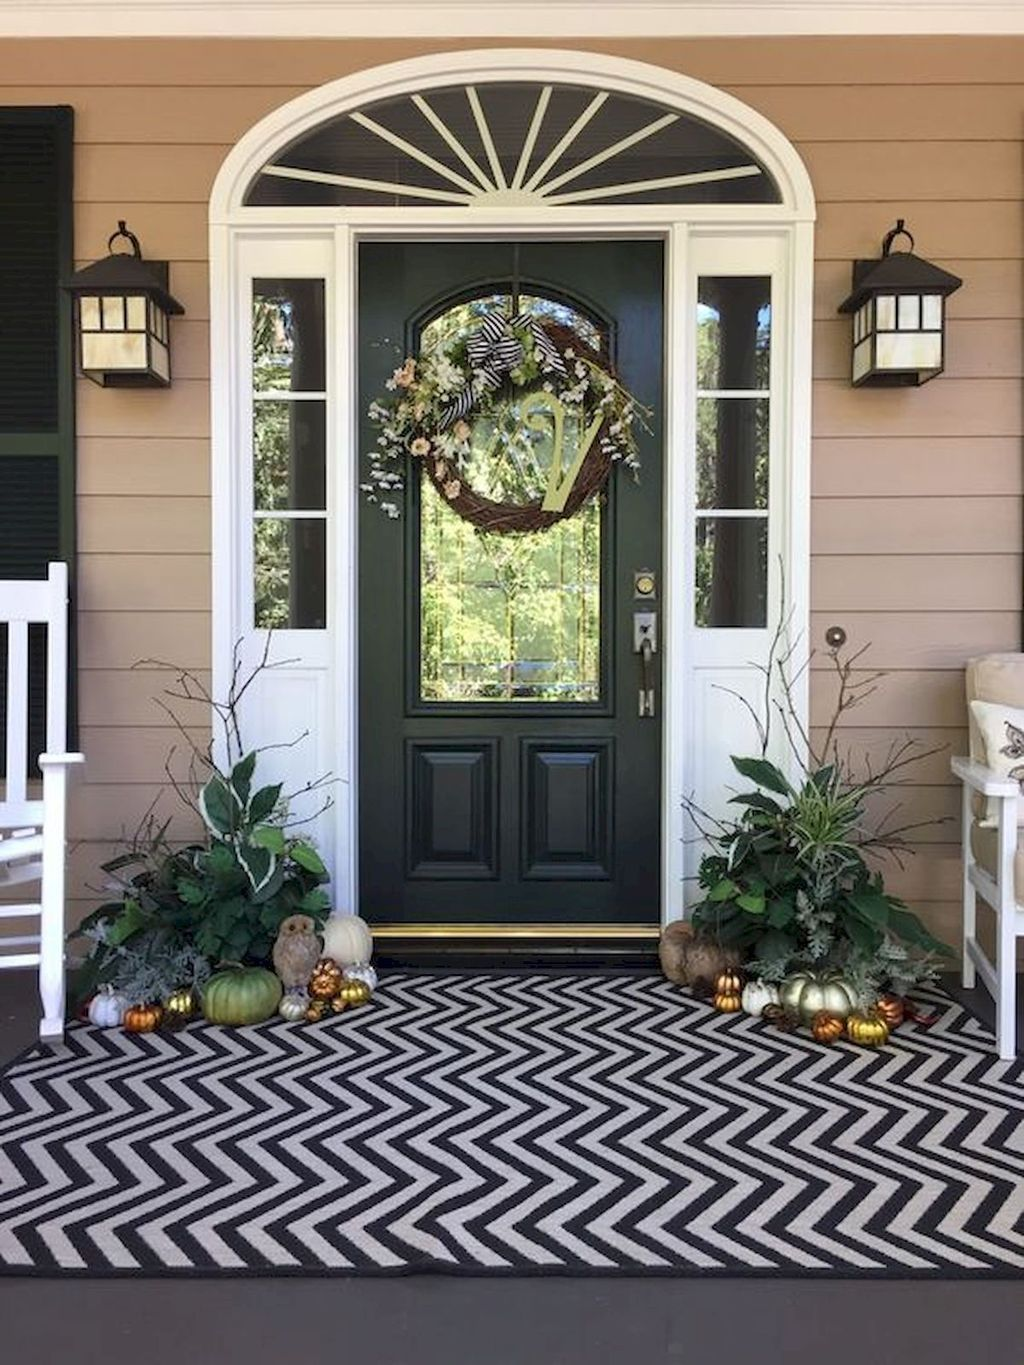 50 gorgeous entryway rug ideas to try asap with images on gorgeous modern farmhouse entryway decorating ideas produce a right one id=21028